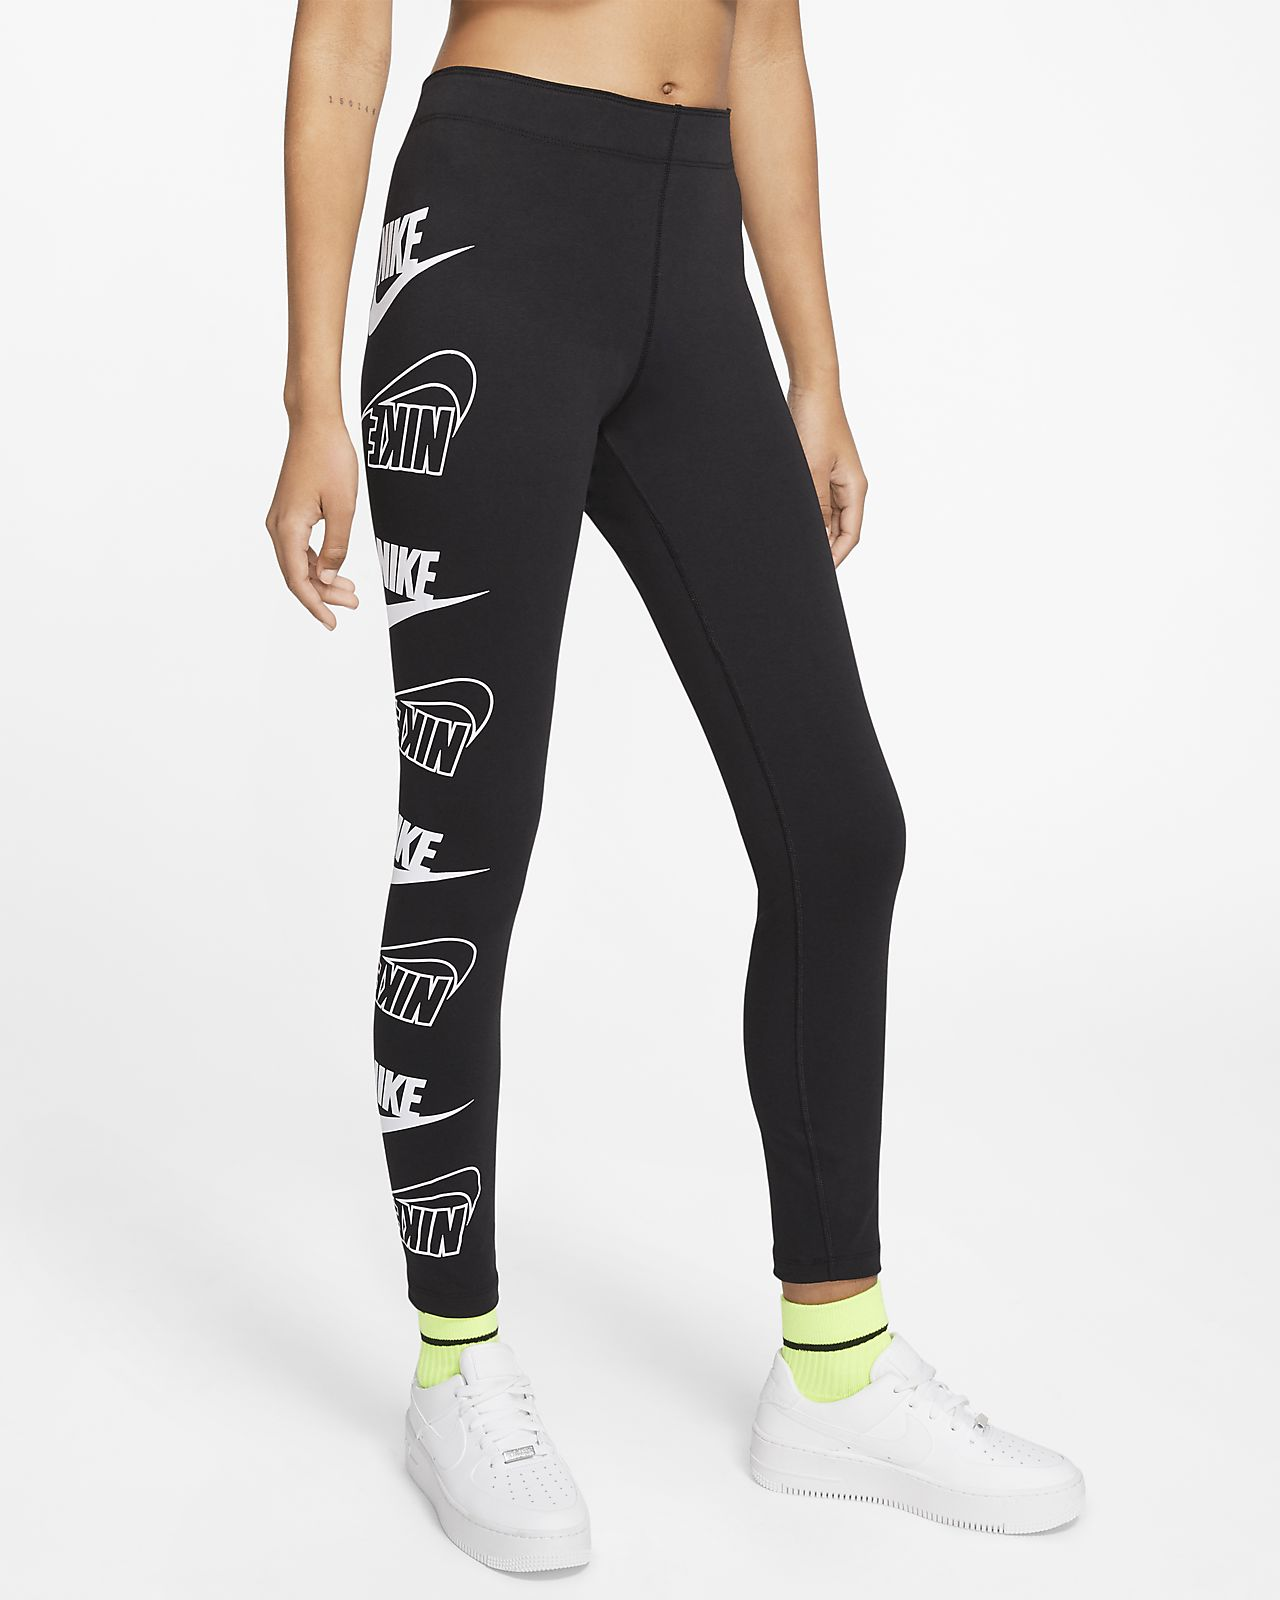 online shop 100% top quality new specials Nike Sportswear Leg-A-See Damen-Leggings